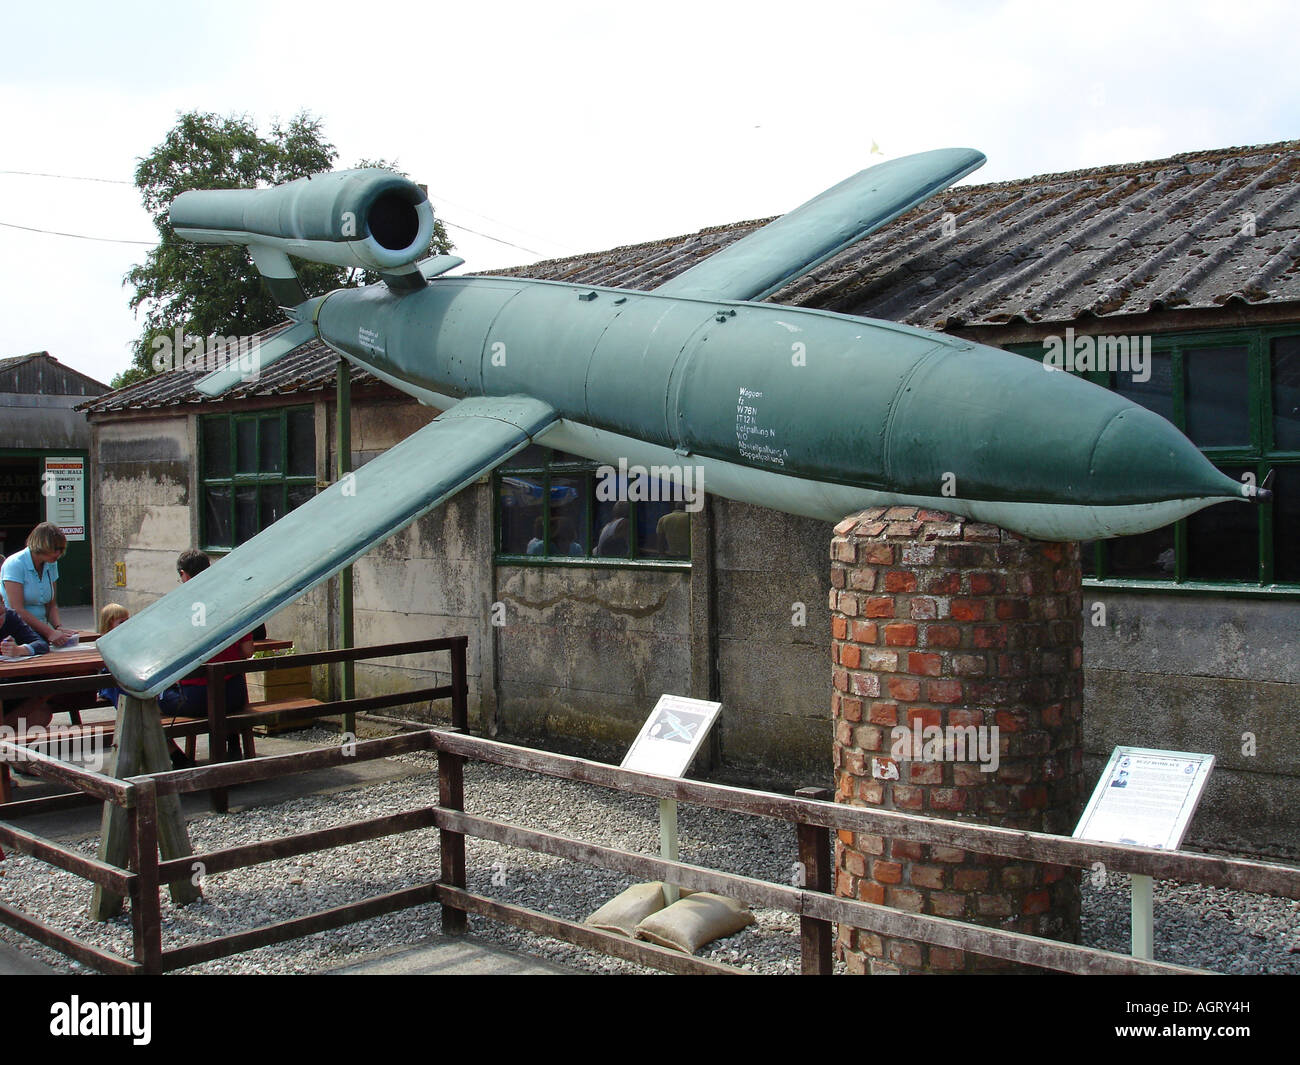 A German World War Two V1 'Flying Bomb' doodlebug at the Eden Camp Museum, North Yorkshire. - Stock Image